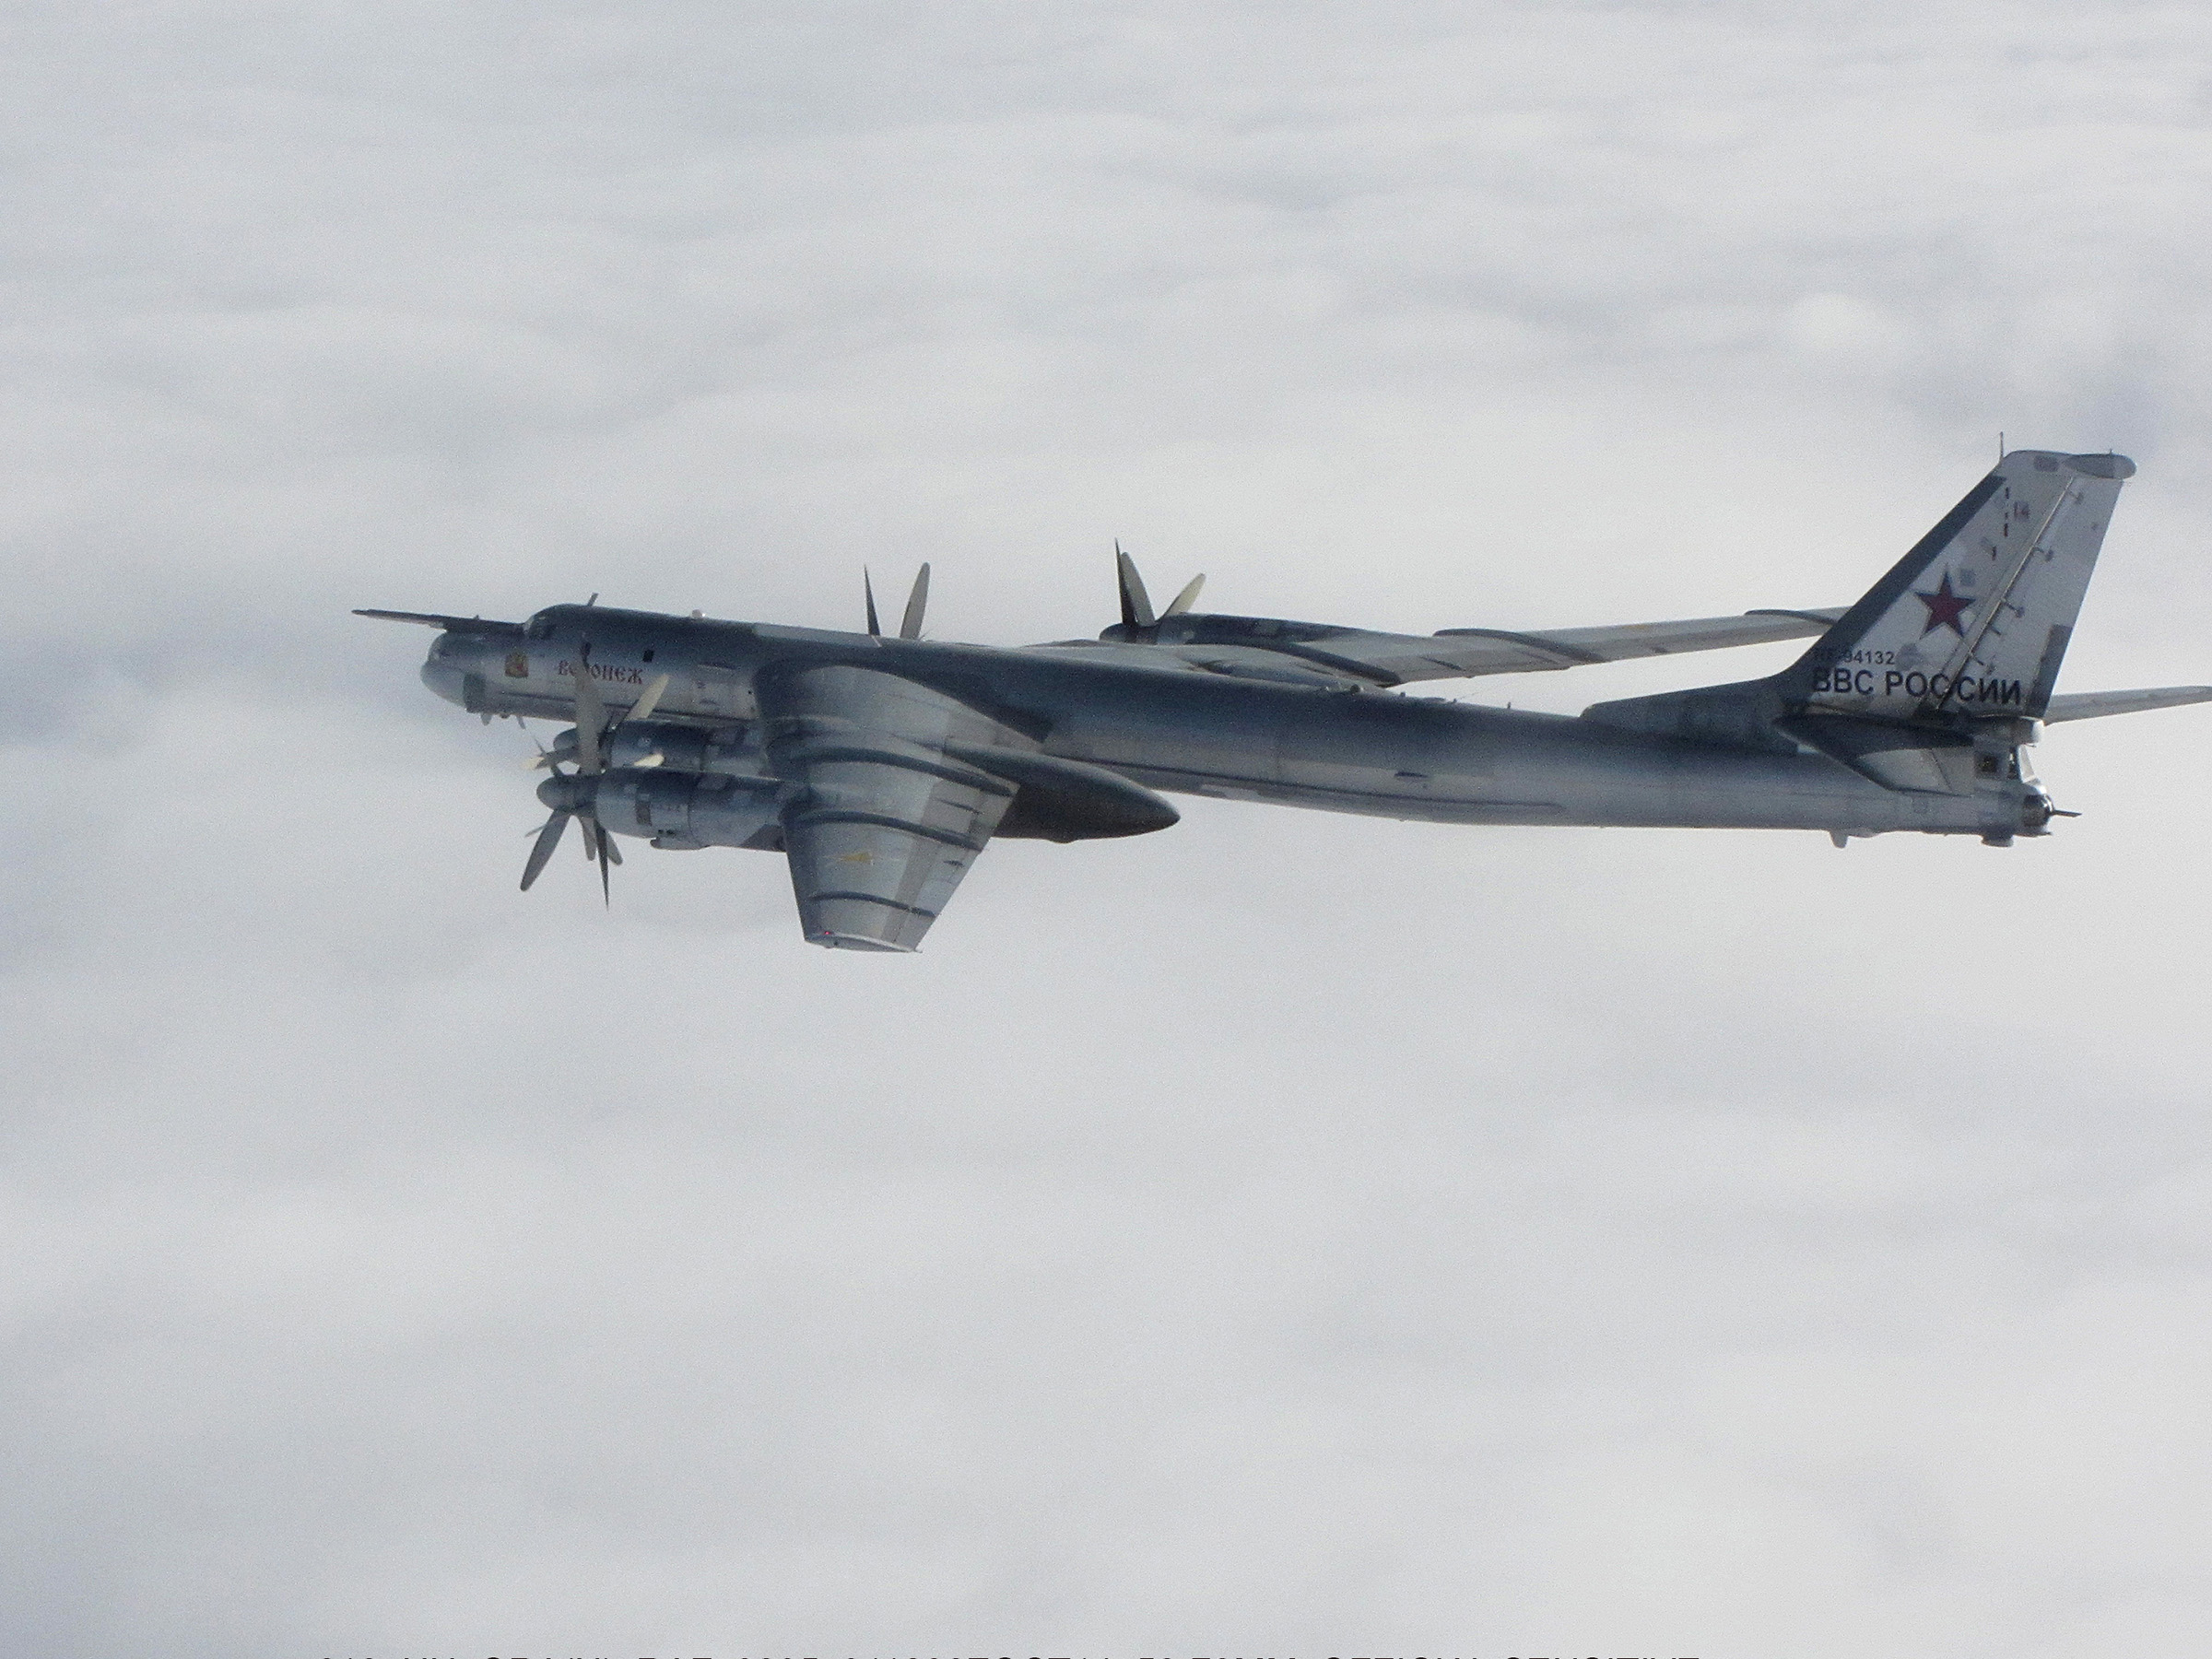 US Air Force officers: Russian bombers are flying nuclear drills